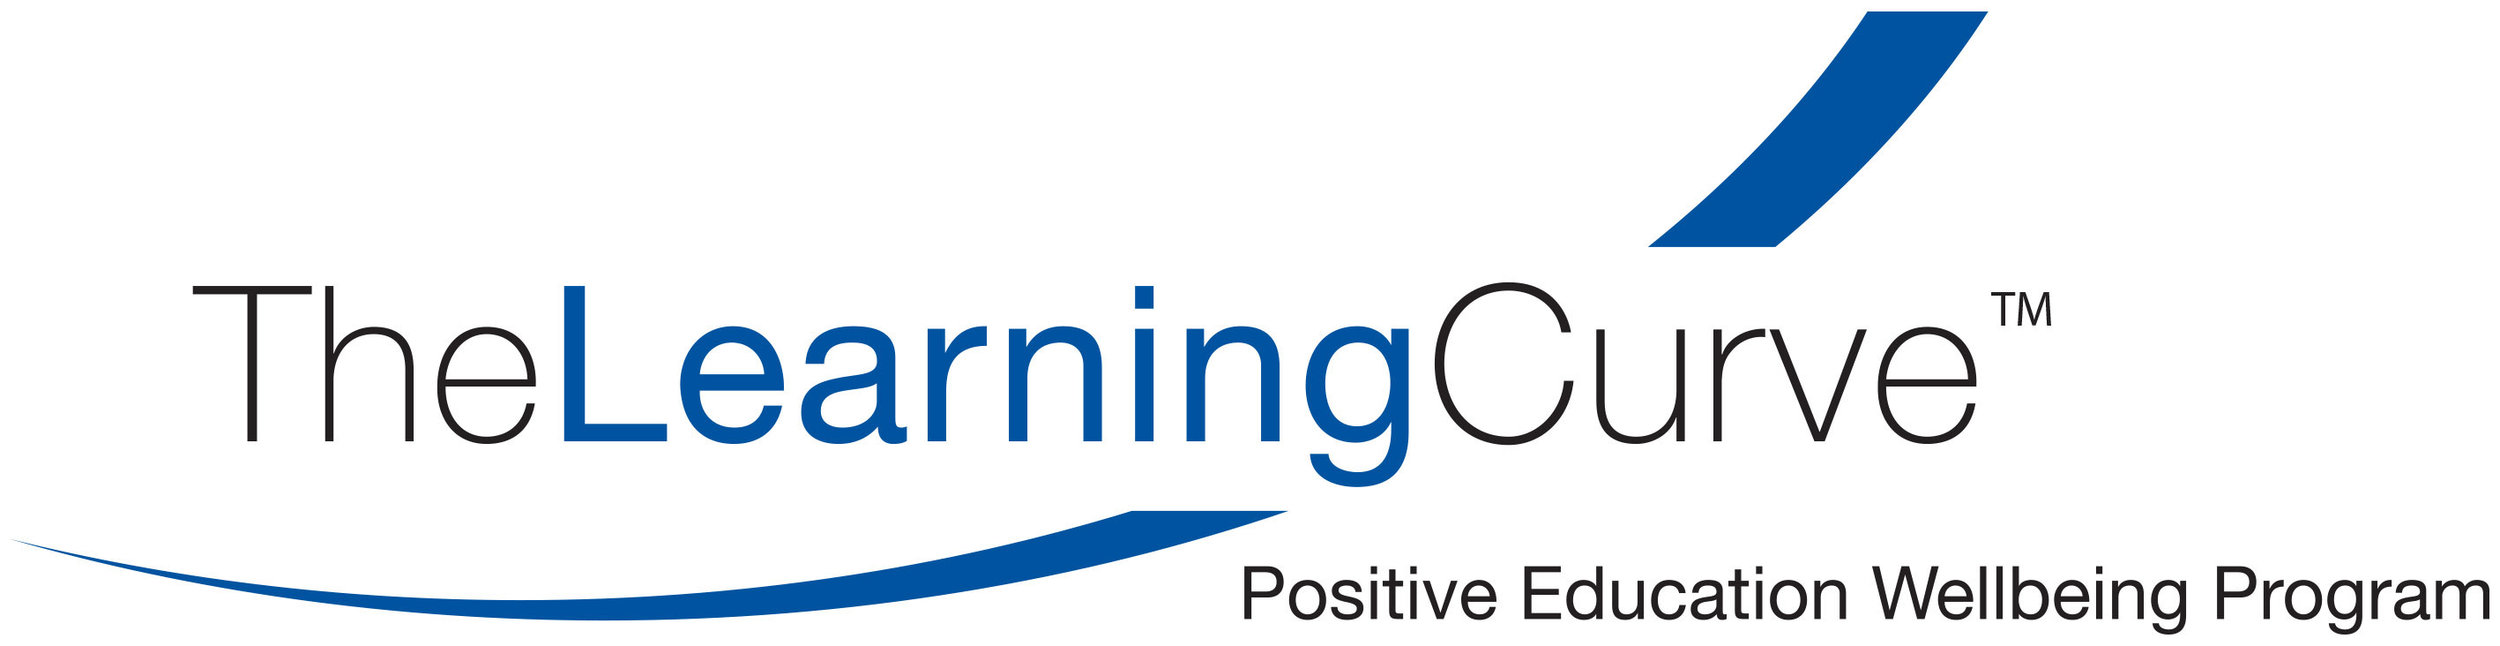 The Learning Curve LOGO (2).jpg